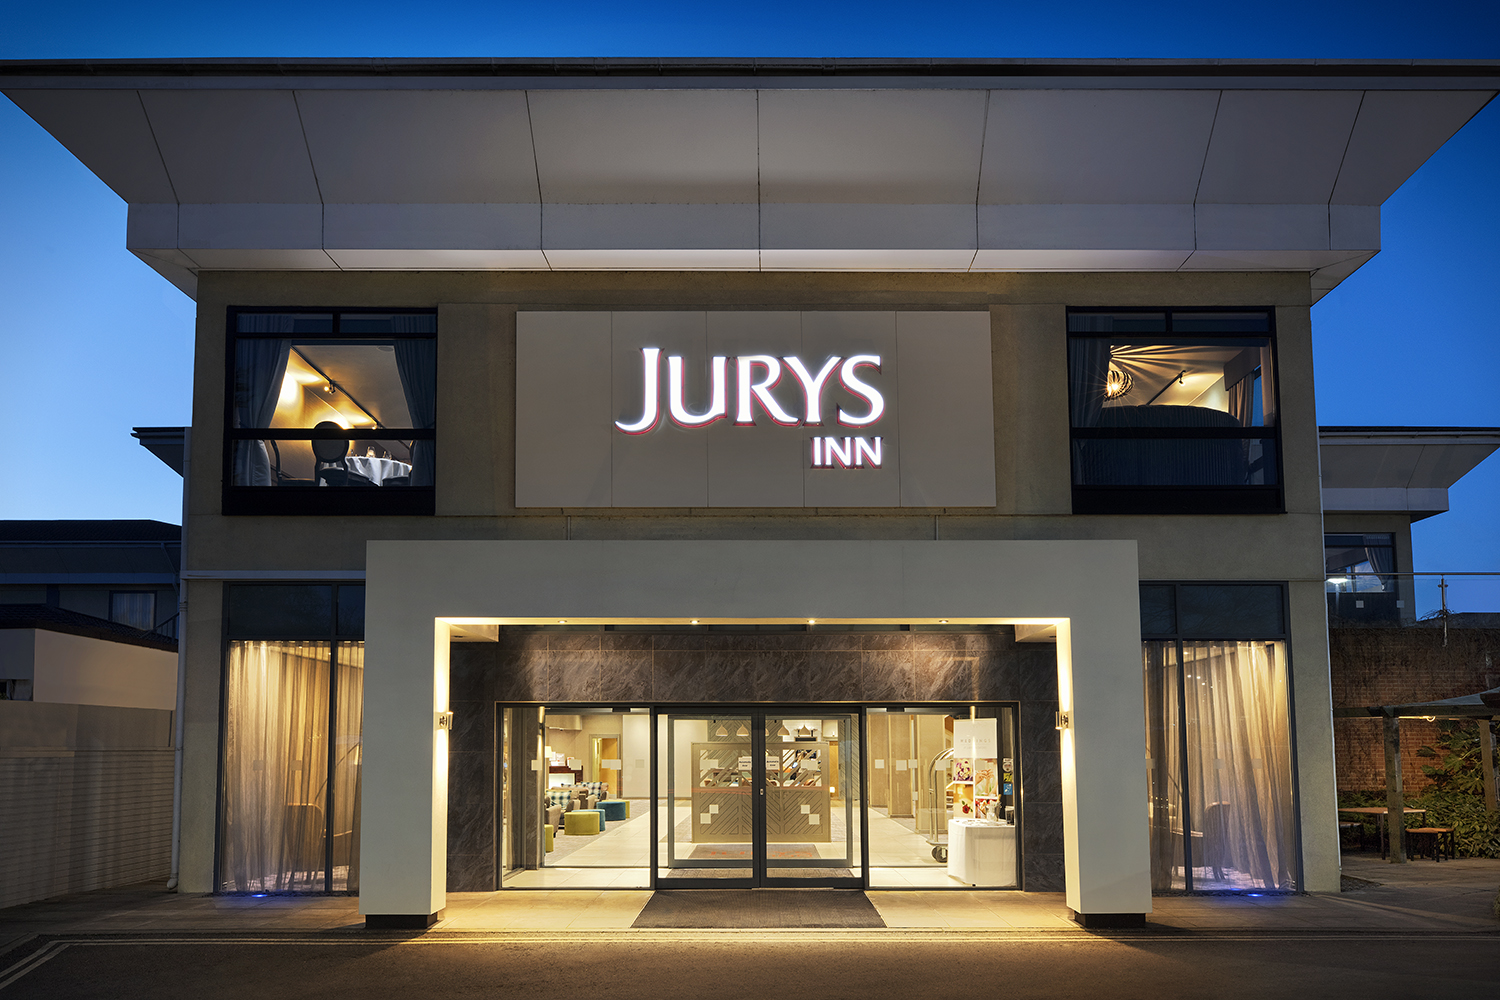 Jurys Inn Oxford - photo